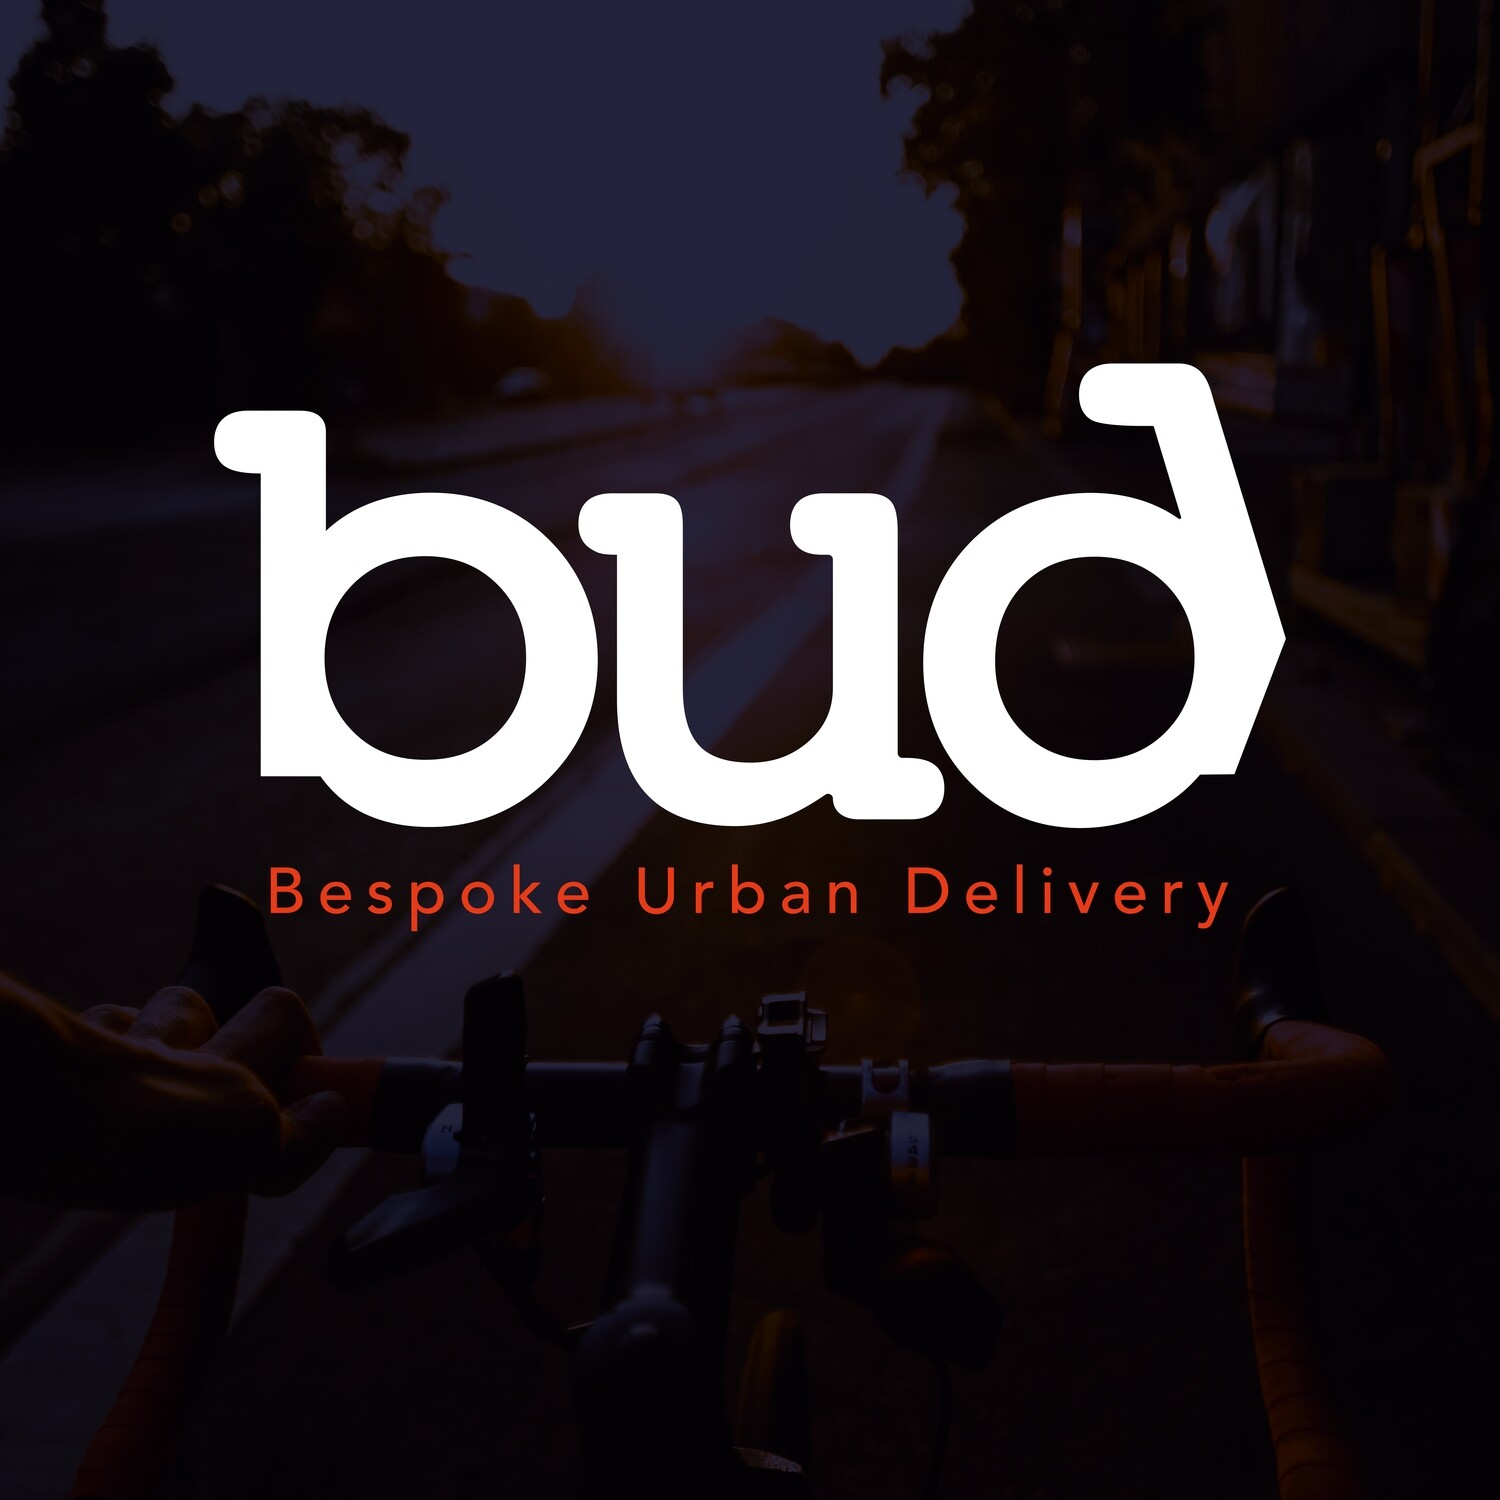 Personal courier service - Gift card